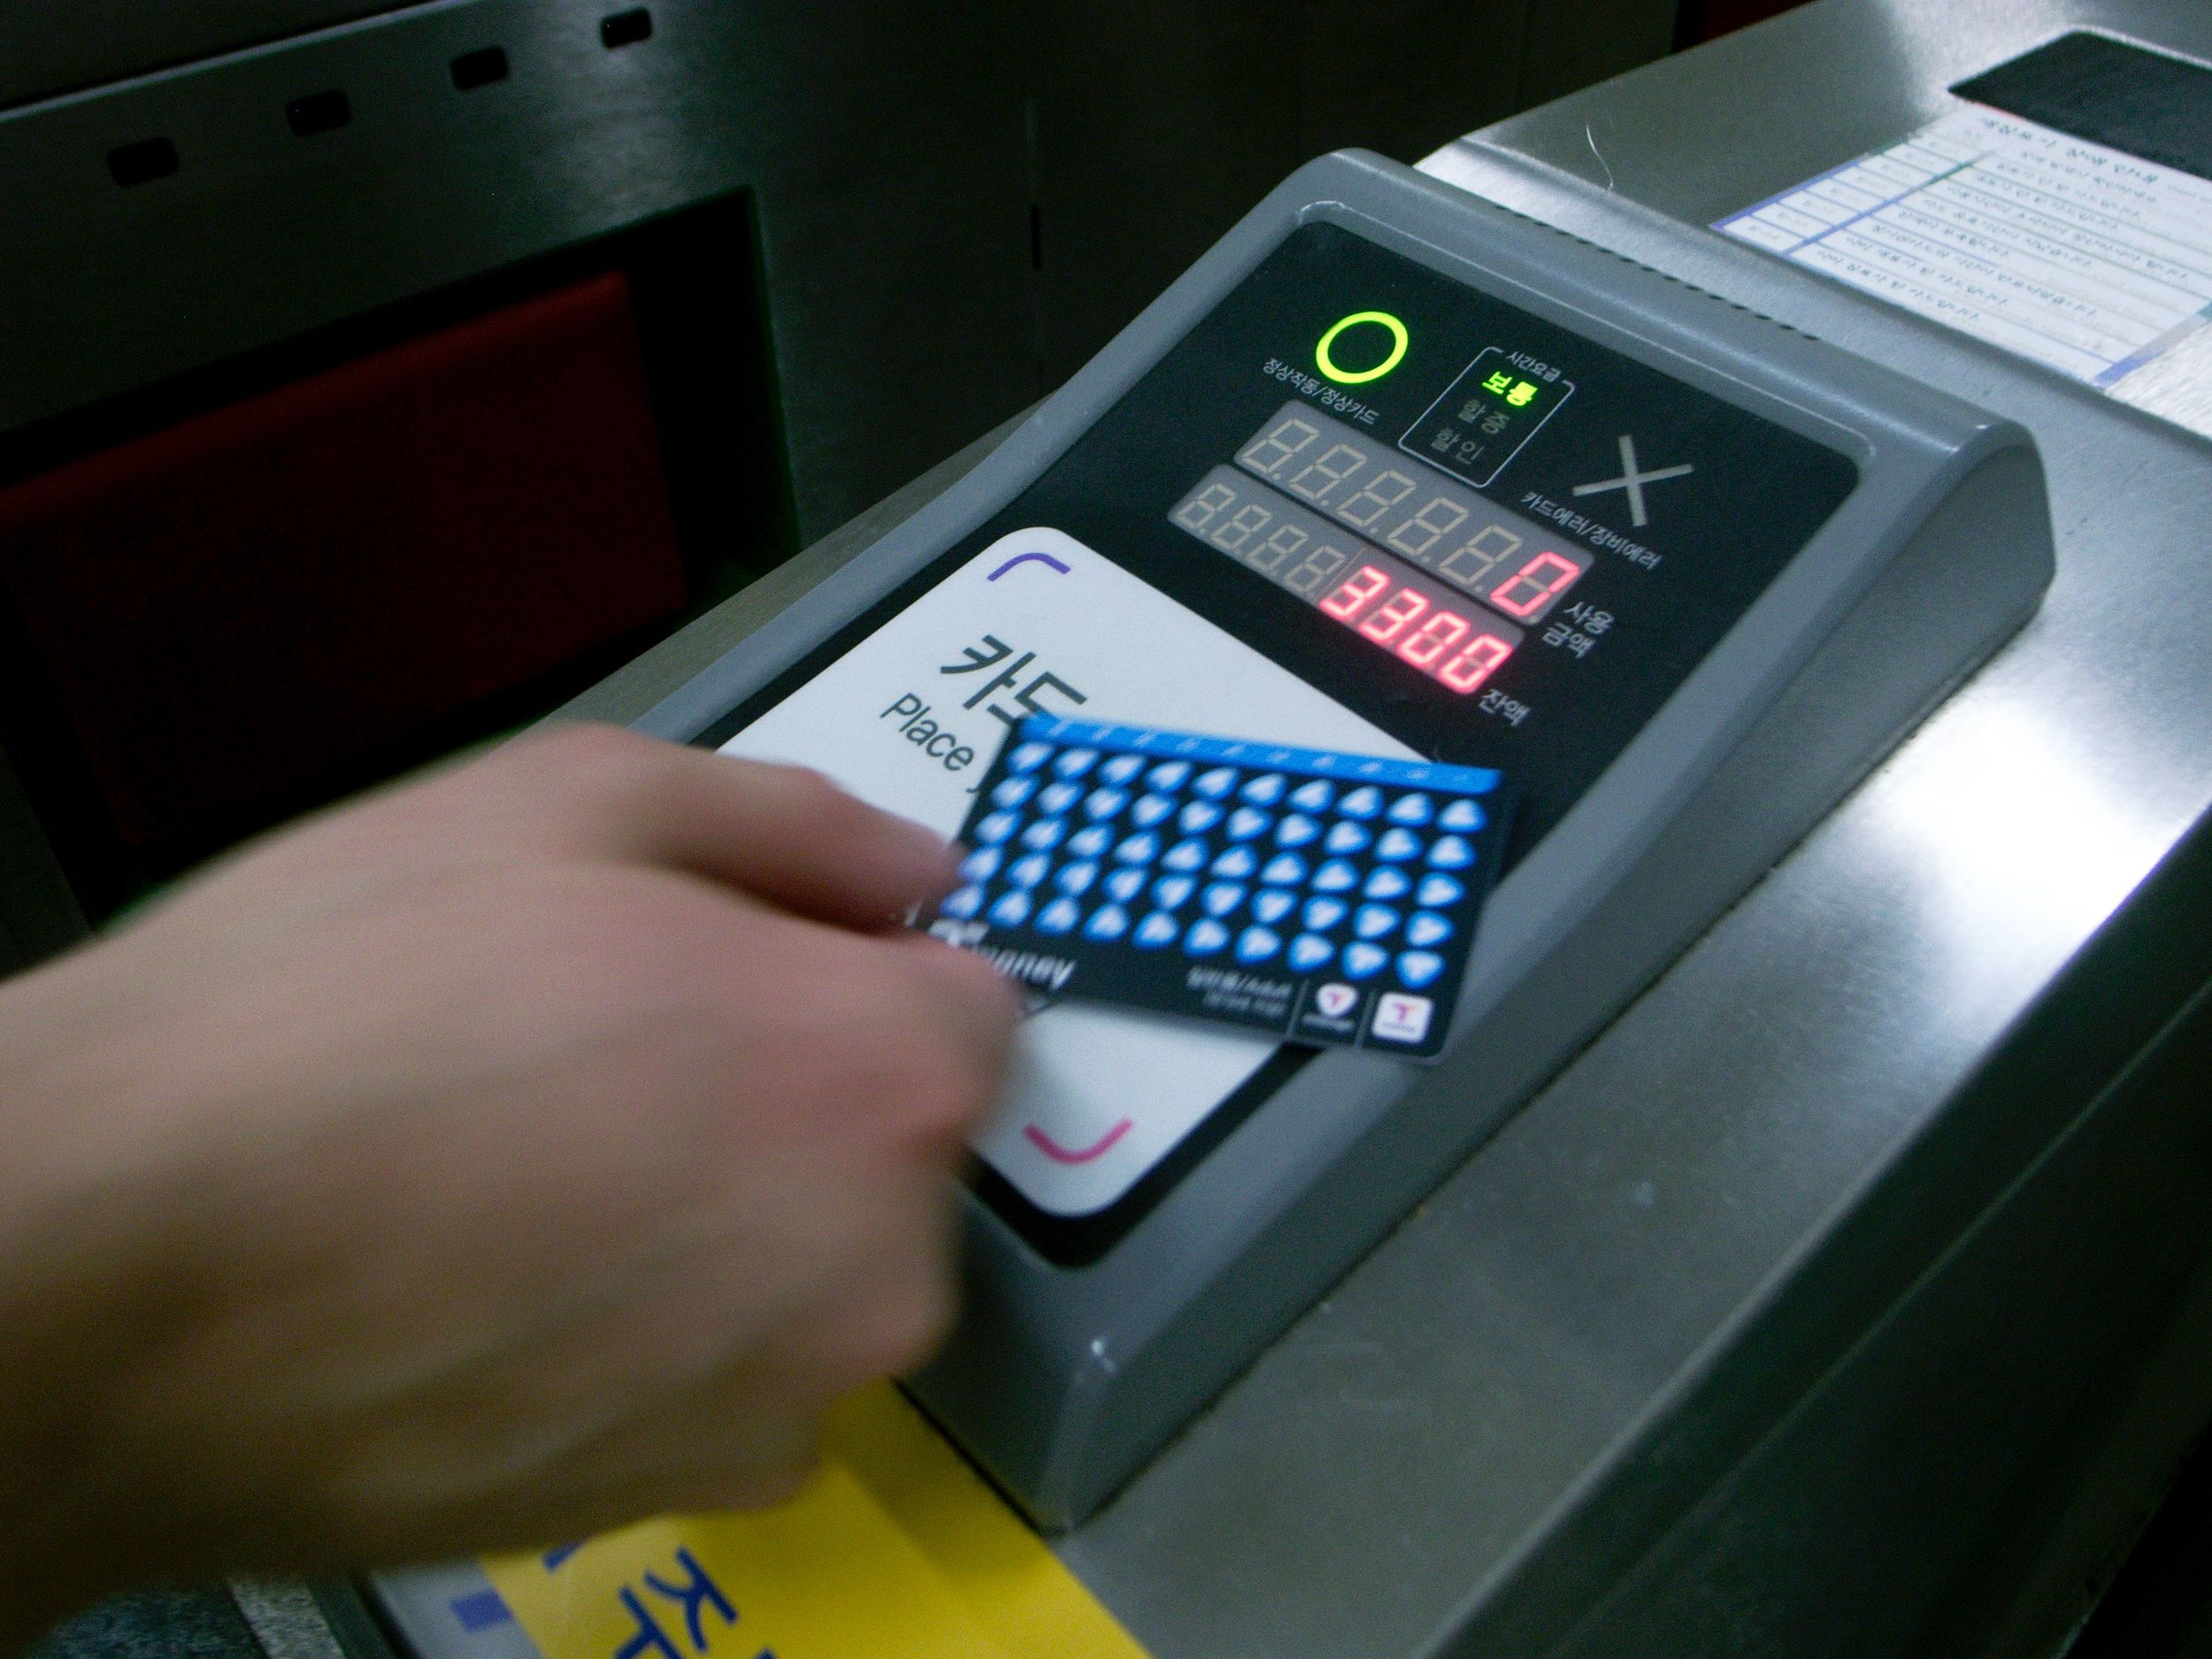 using a T-money card to pay for a subway ride (photo credit: https://www.flickr.com/photos/jooon/7677283452)